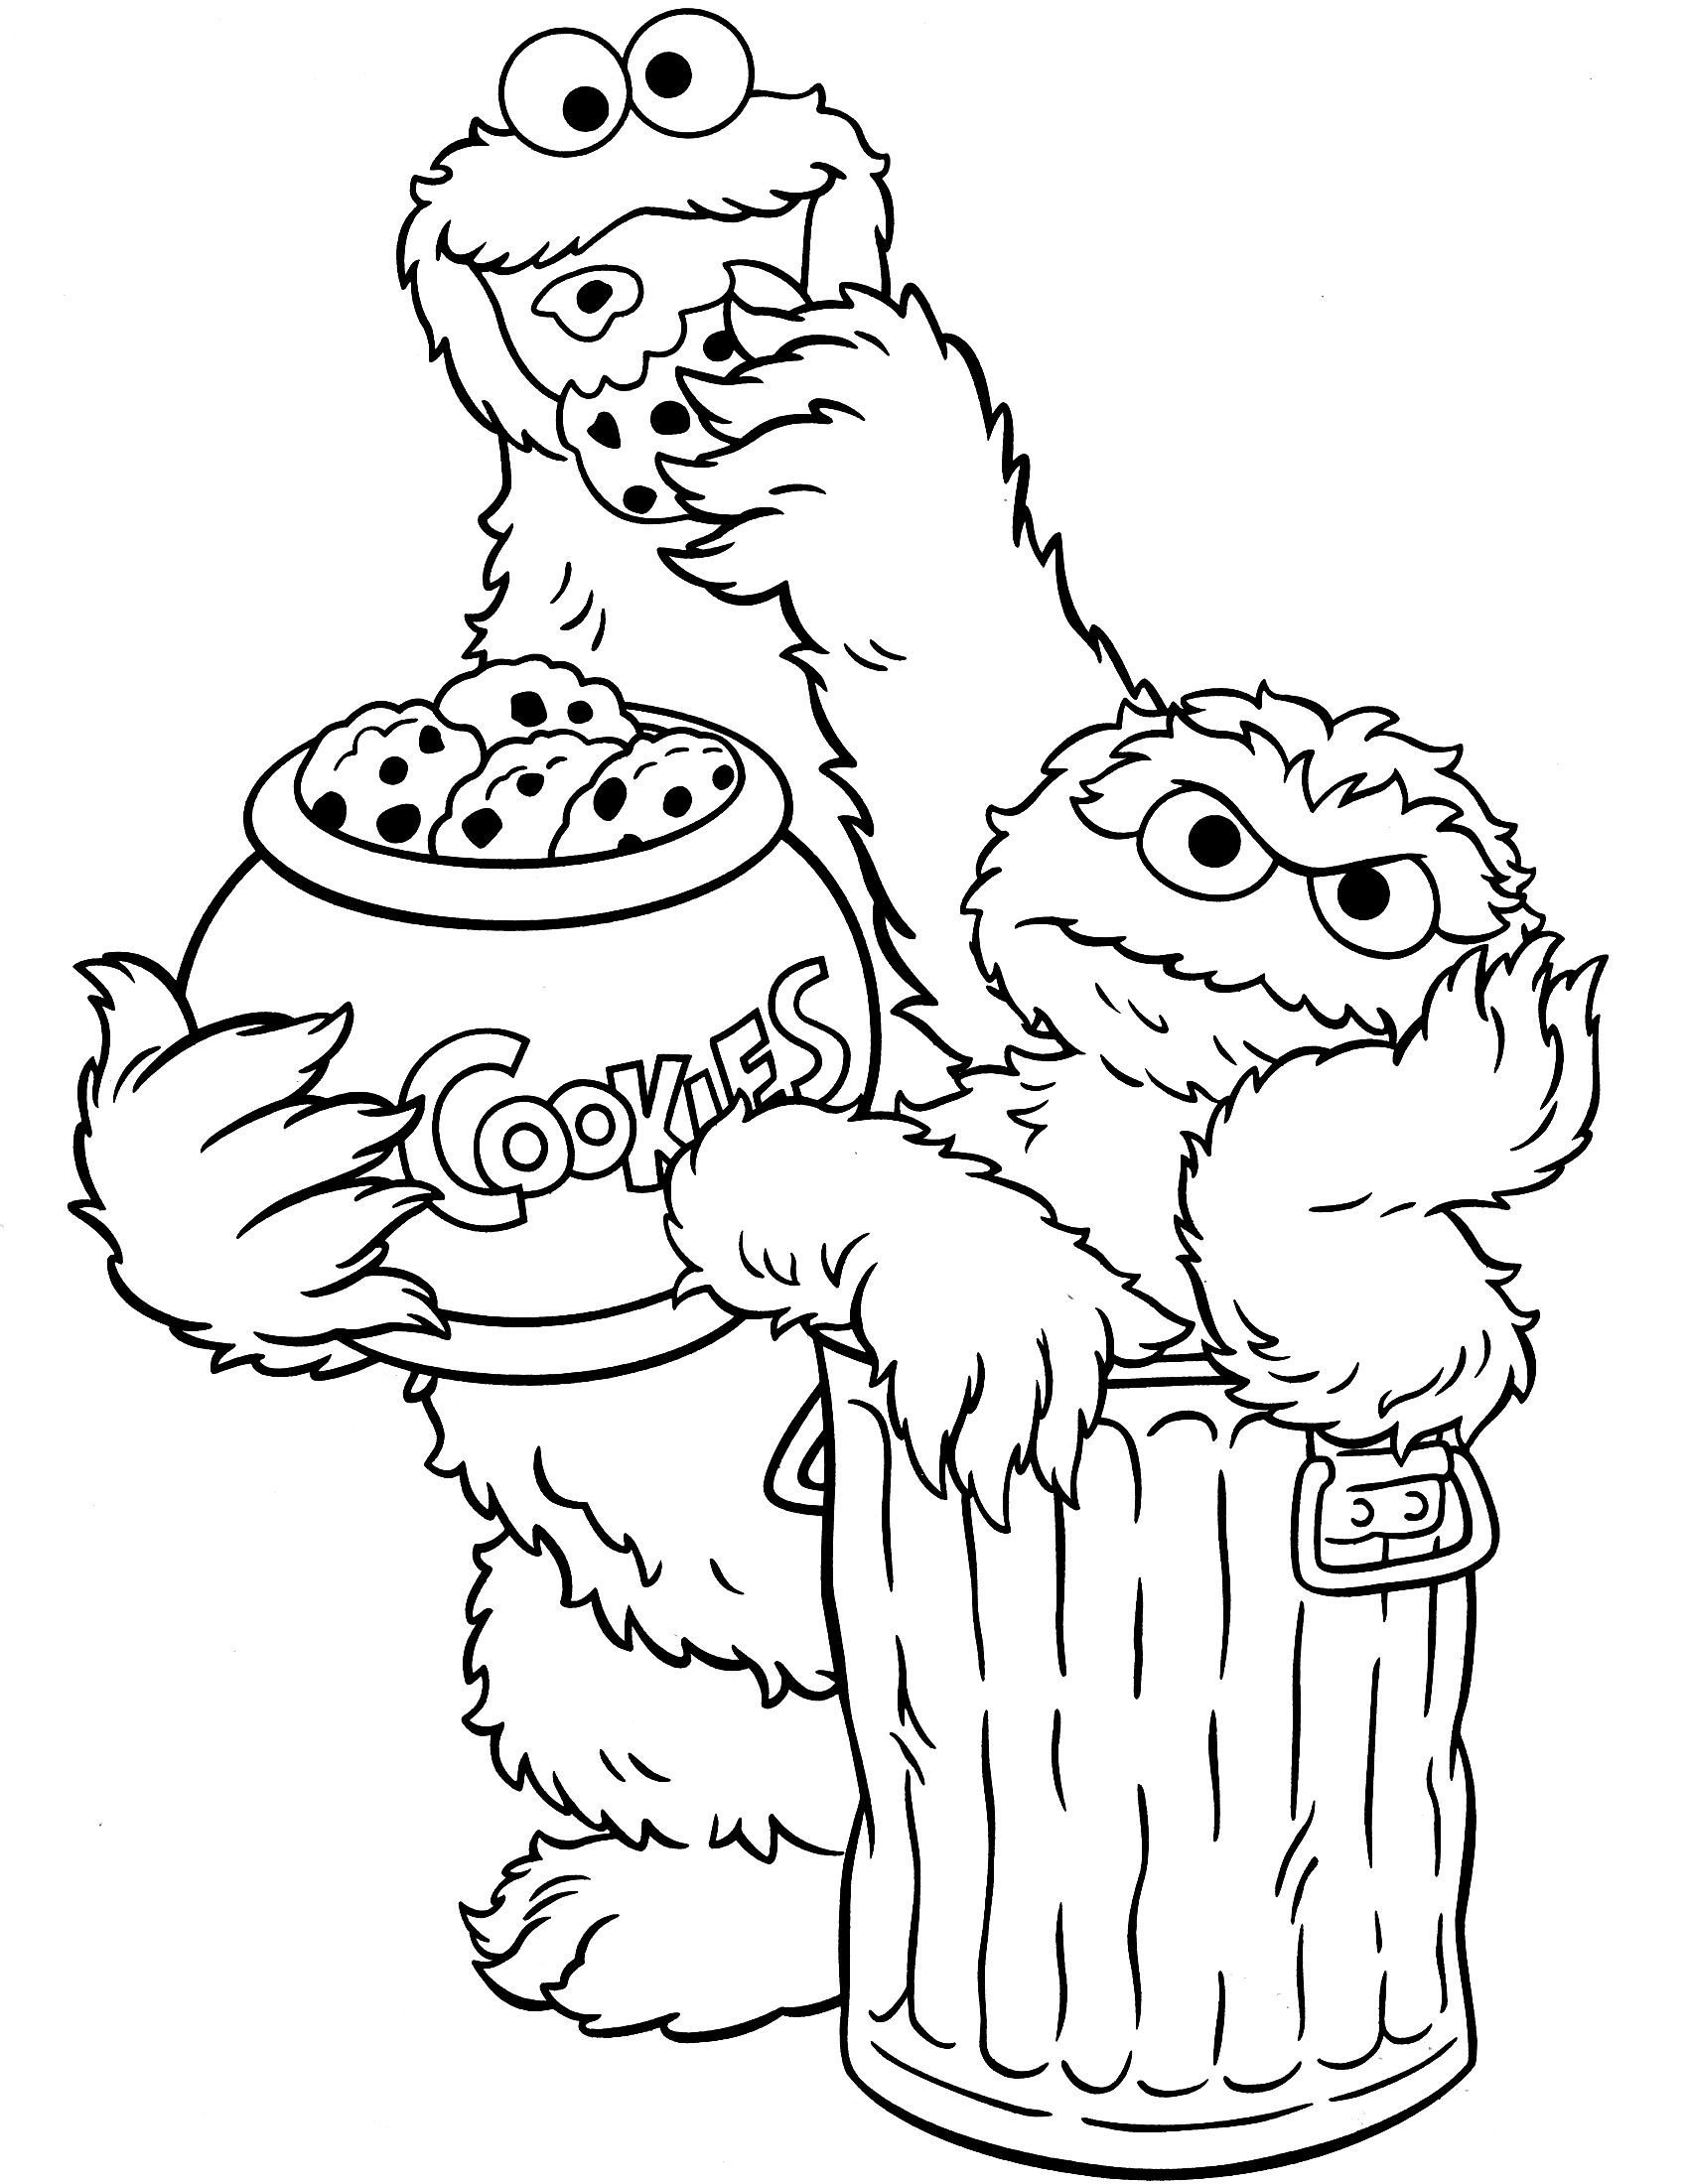 Sesame Street Coloring Pages Google Search Sesame Street